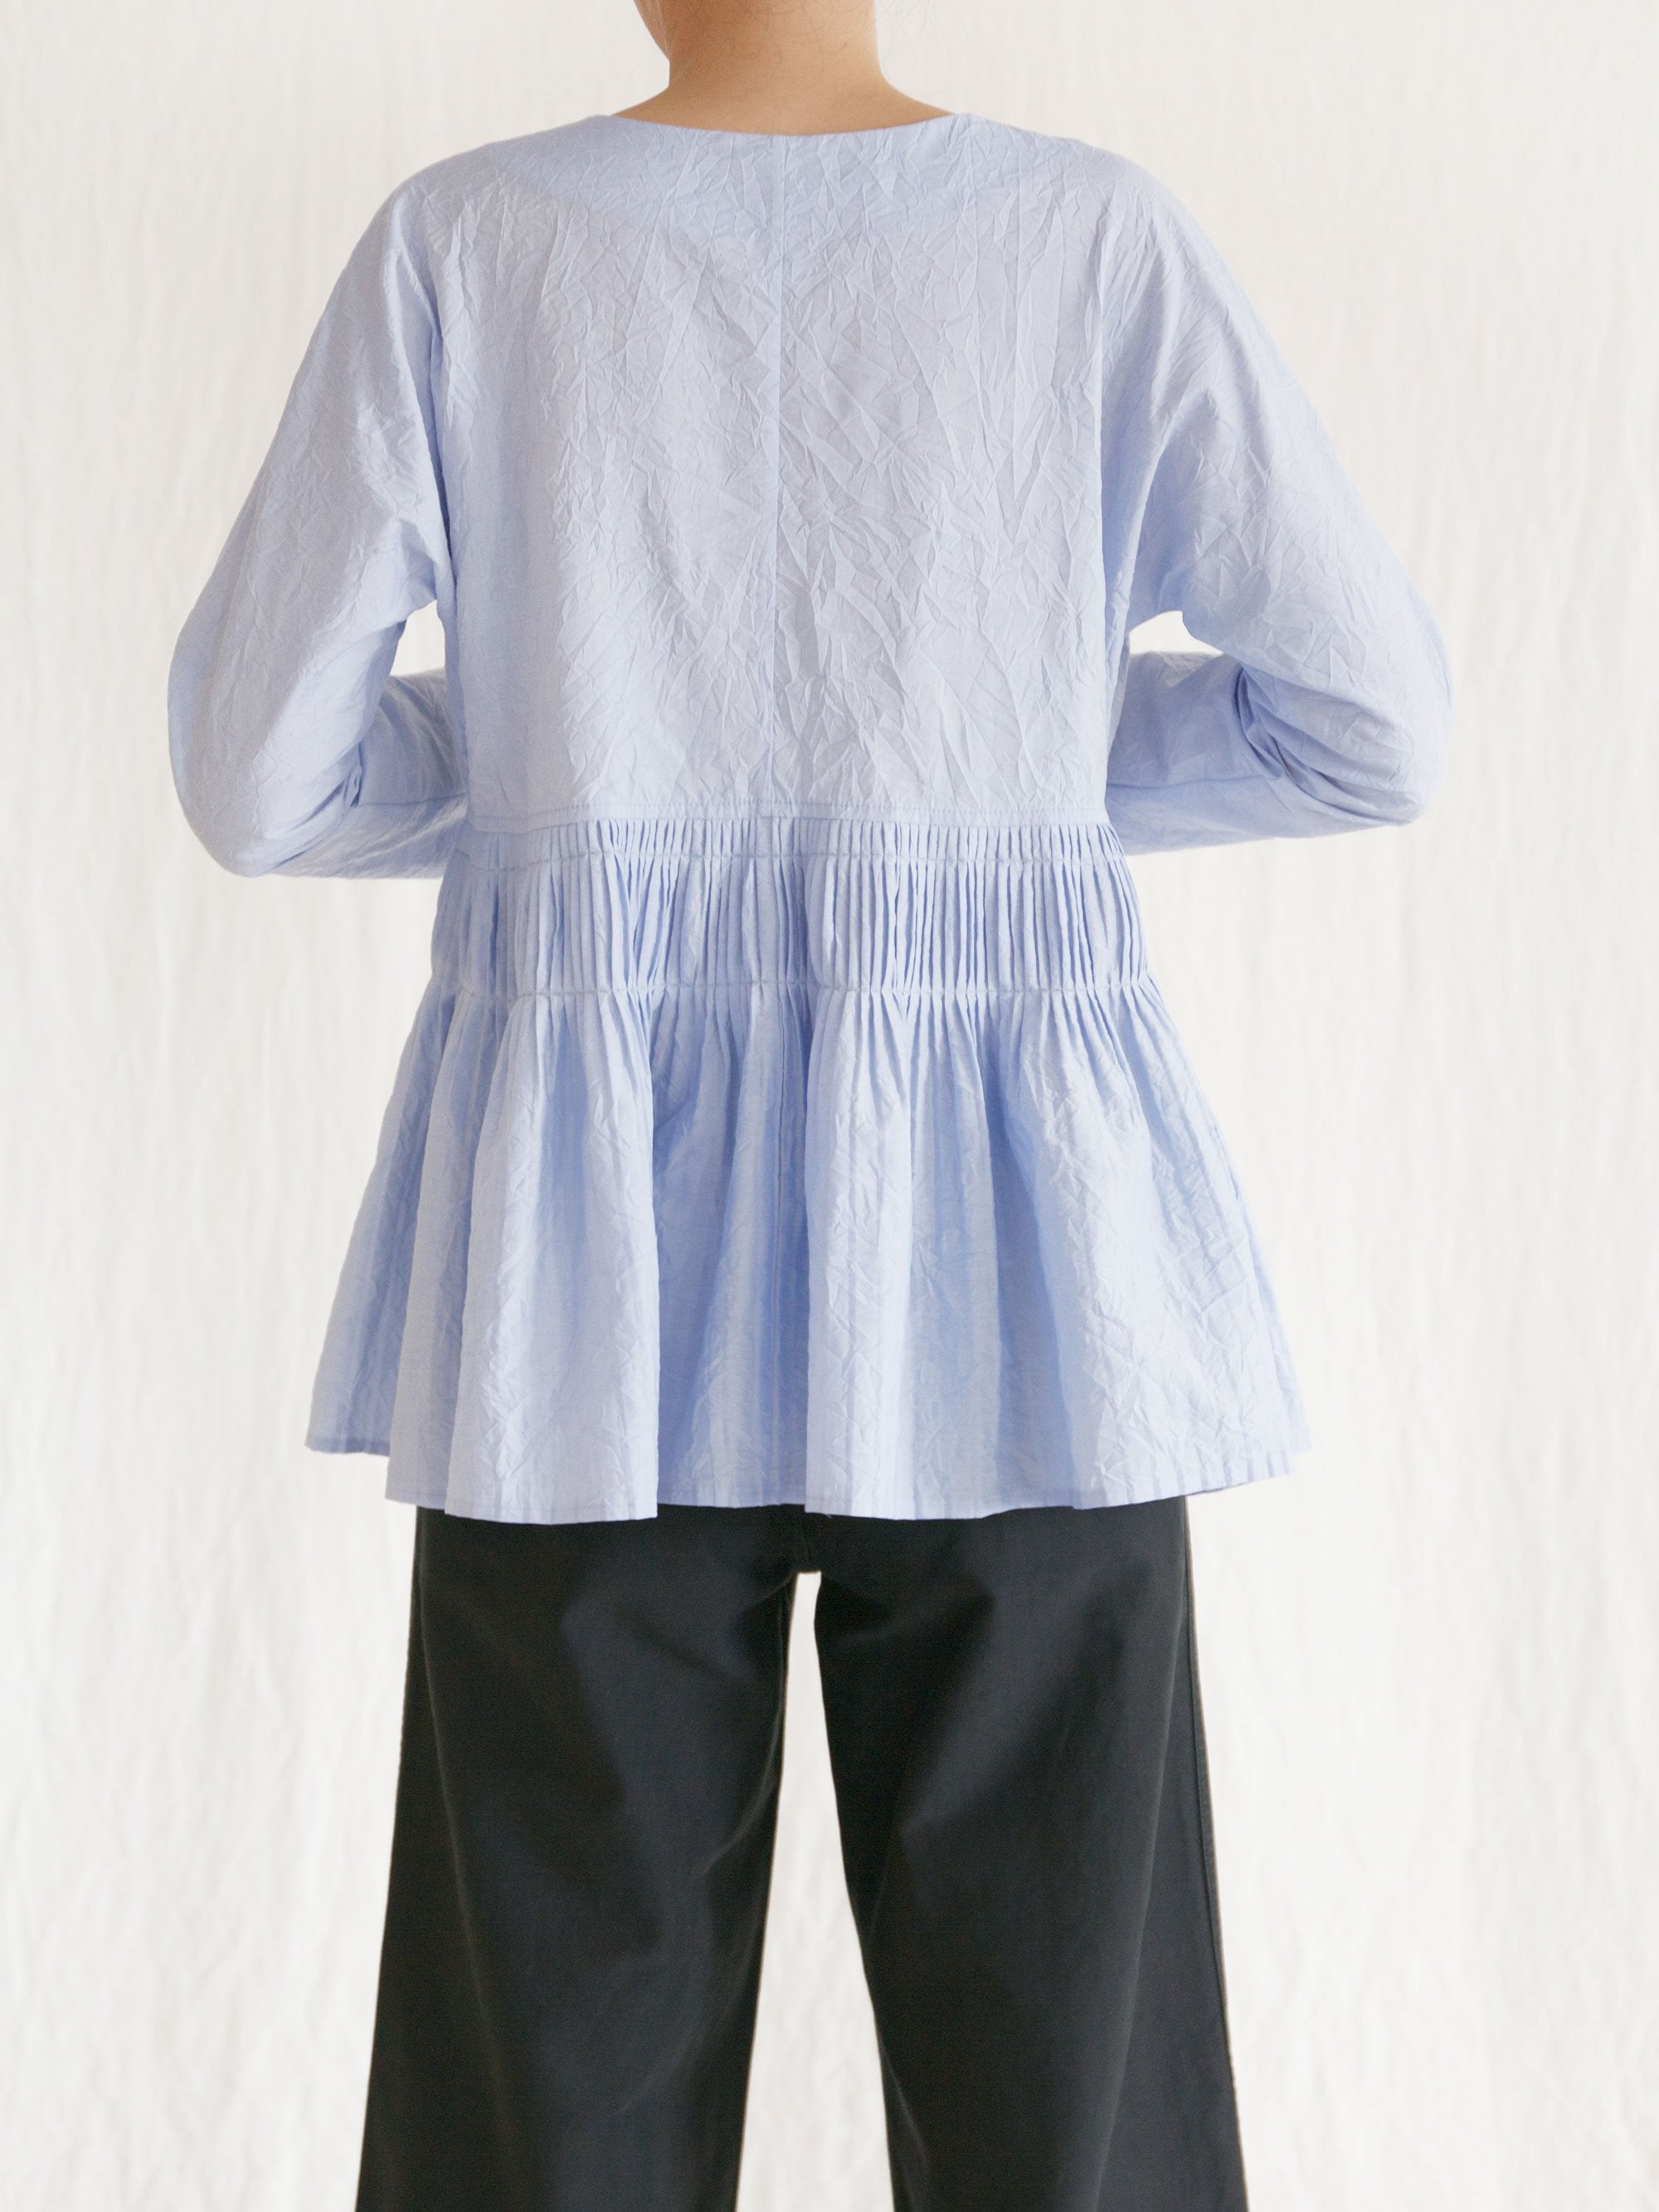 Namu Shop - Caron Callahan Mica Top - Crinkle Blue Oxford